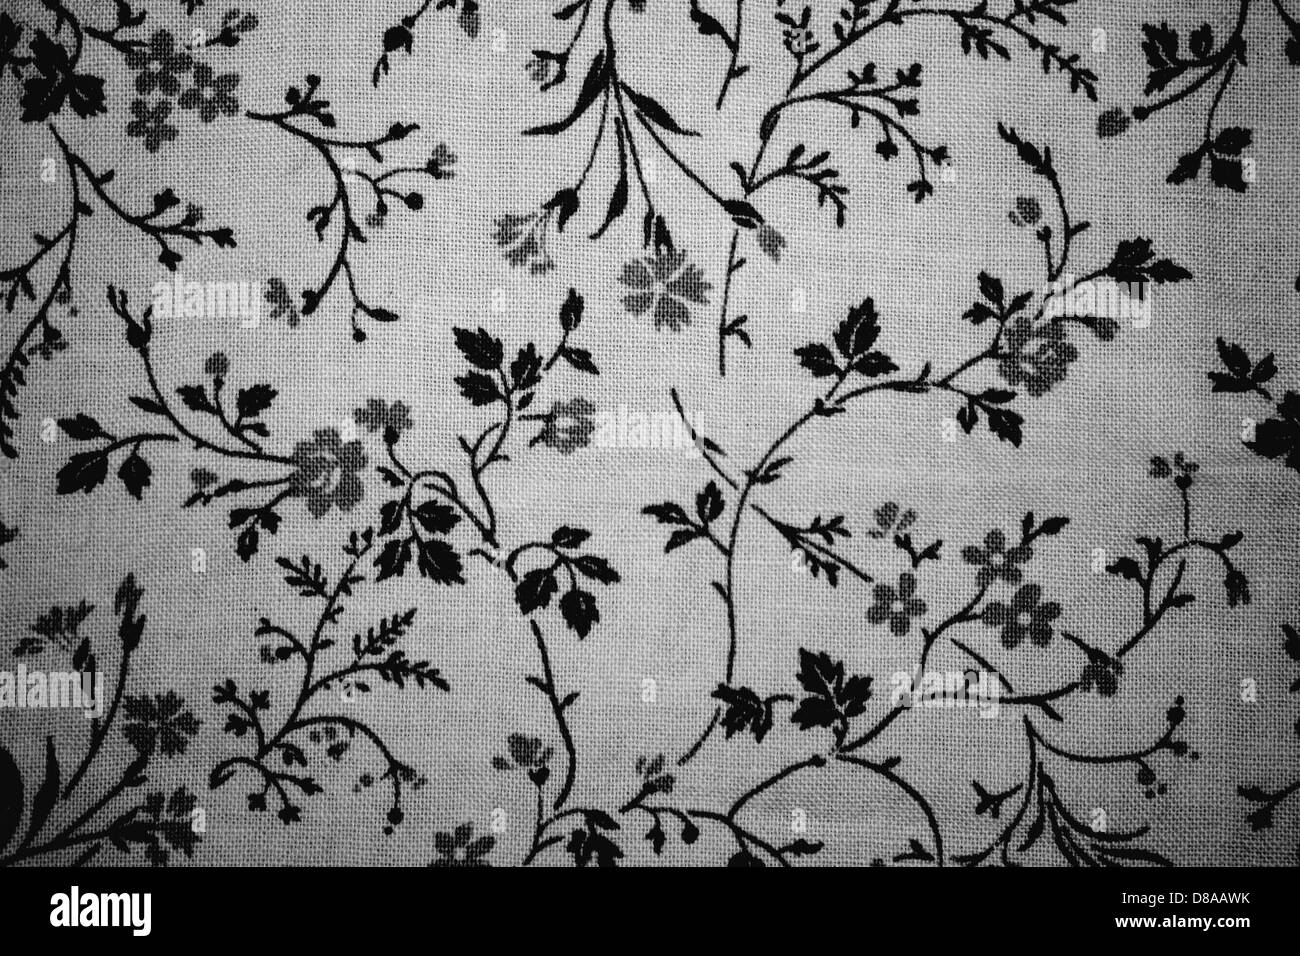 Floral Print Black And White Stock Photos Images Alamy